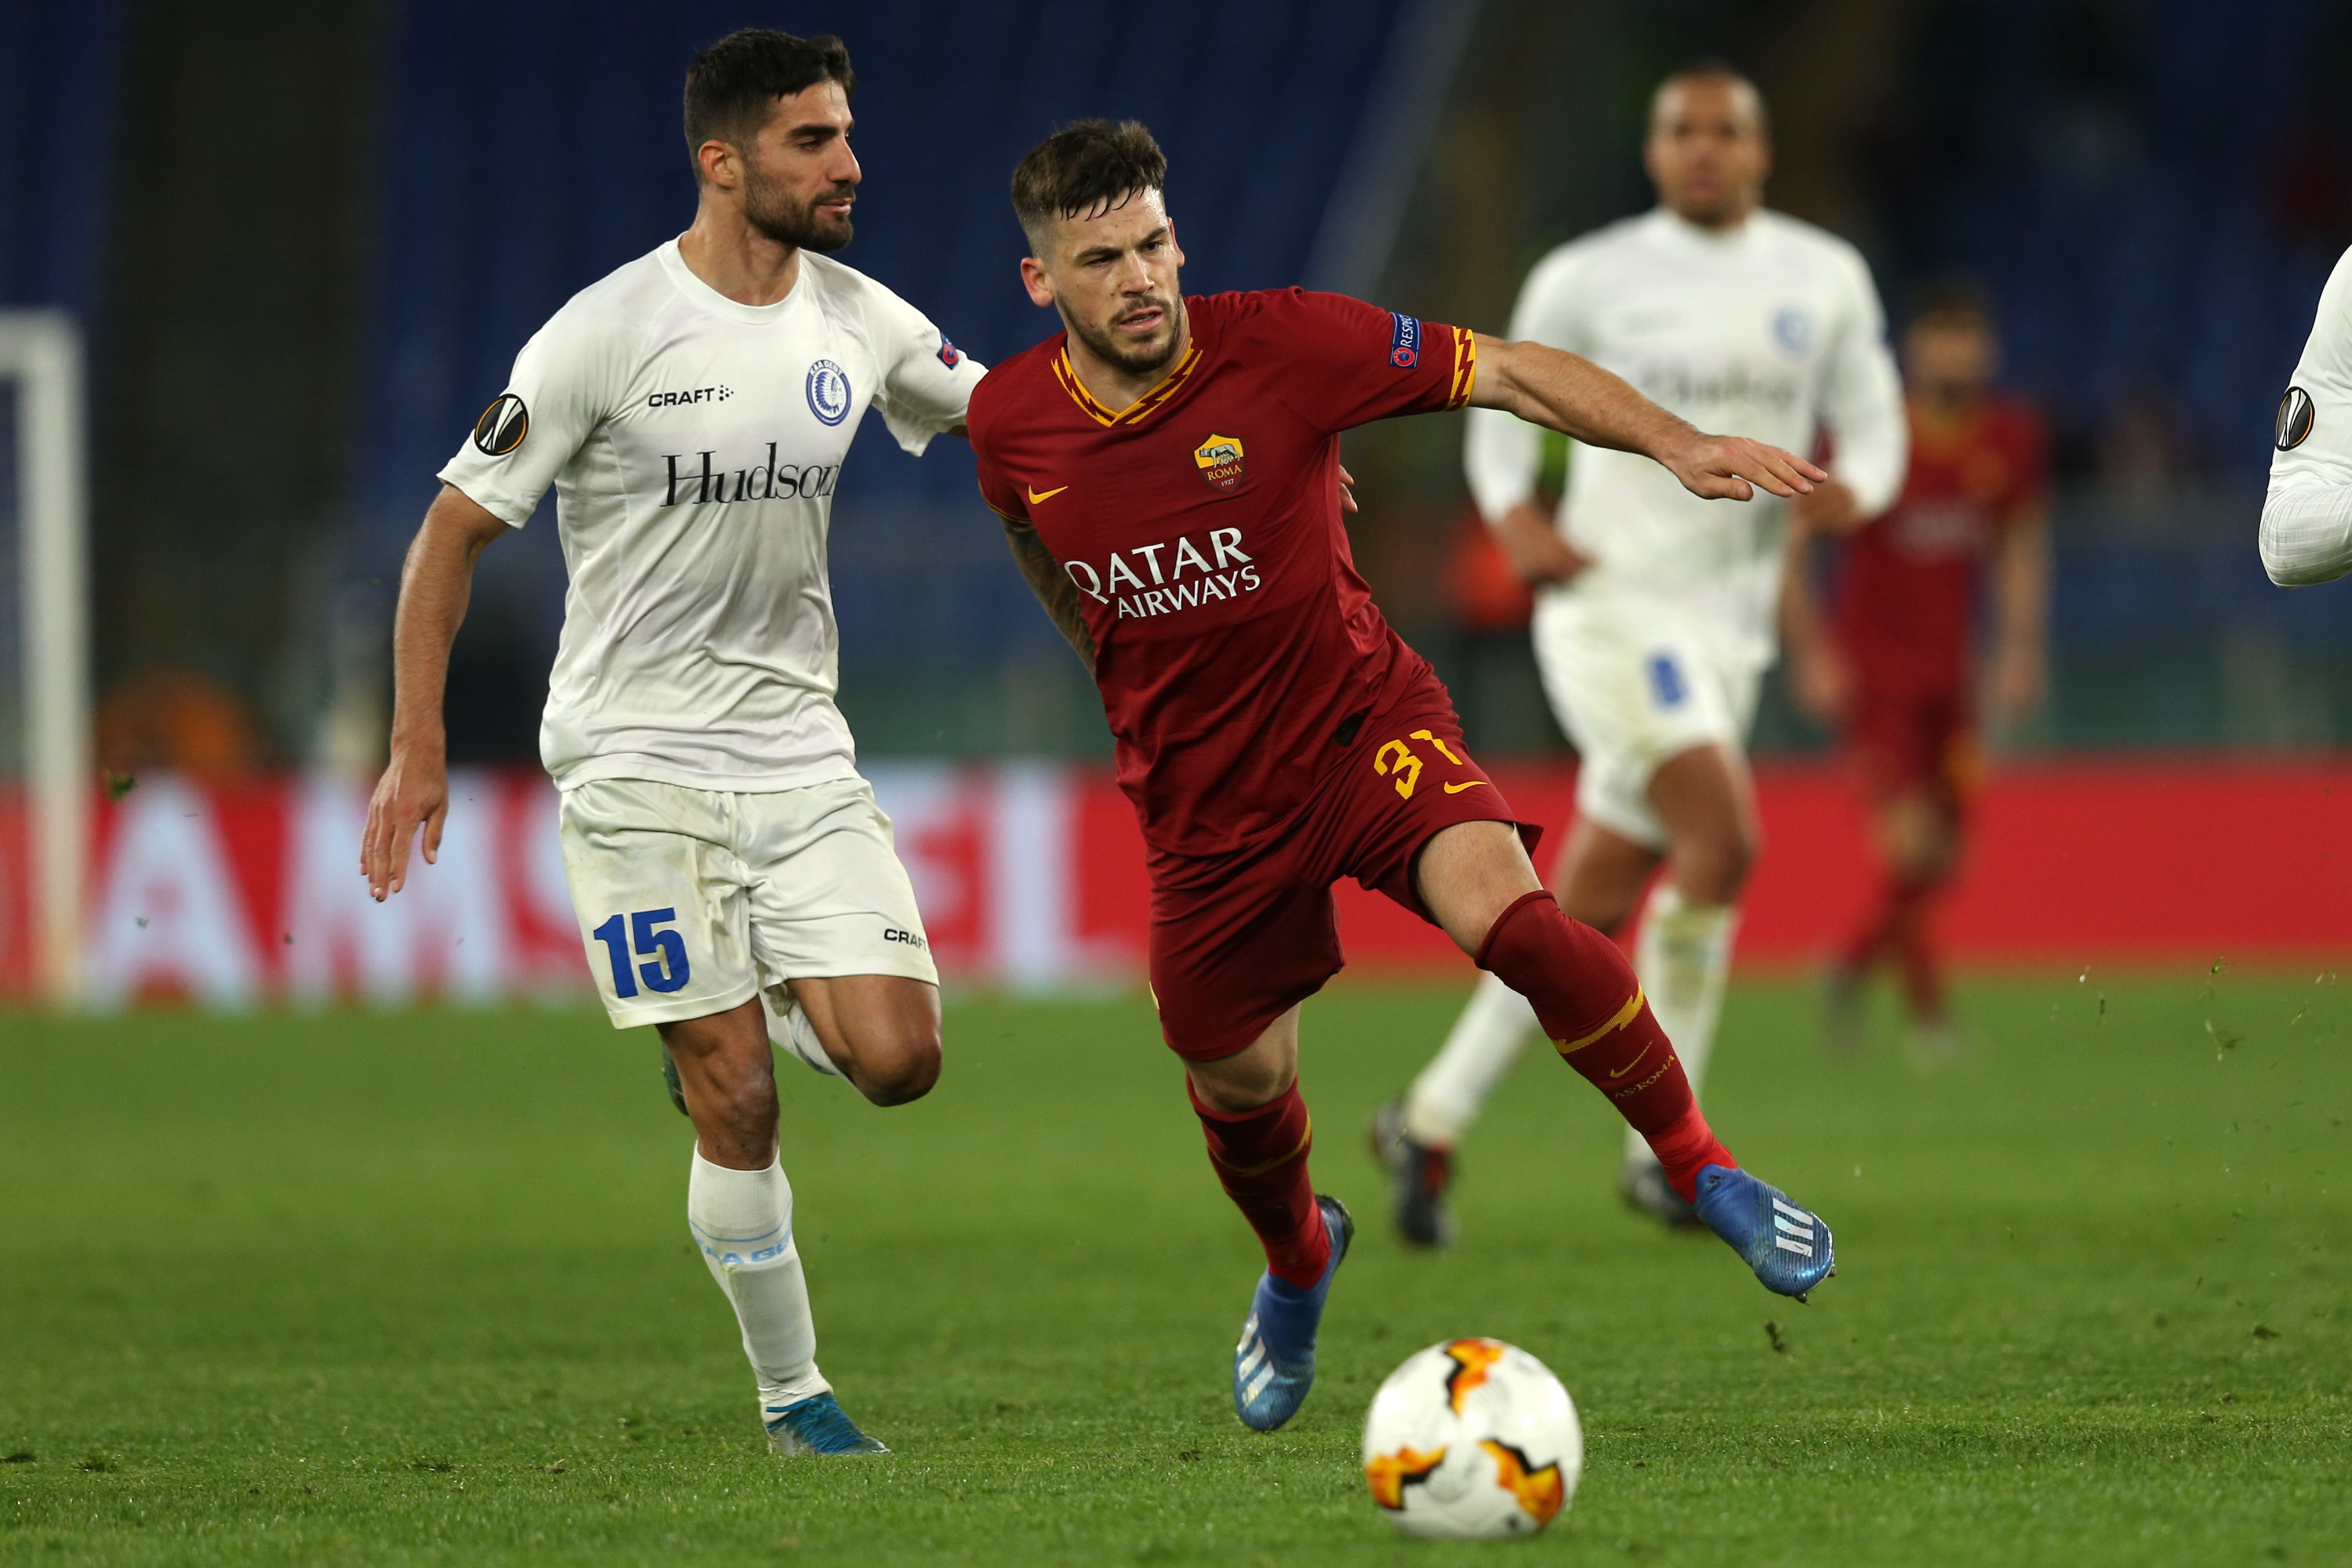 Carles Perez (Roma) in action during the Europa League match...